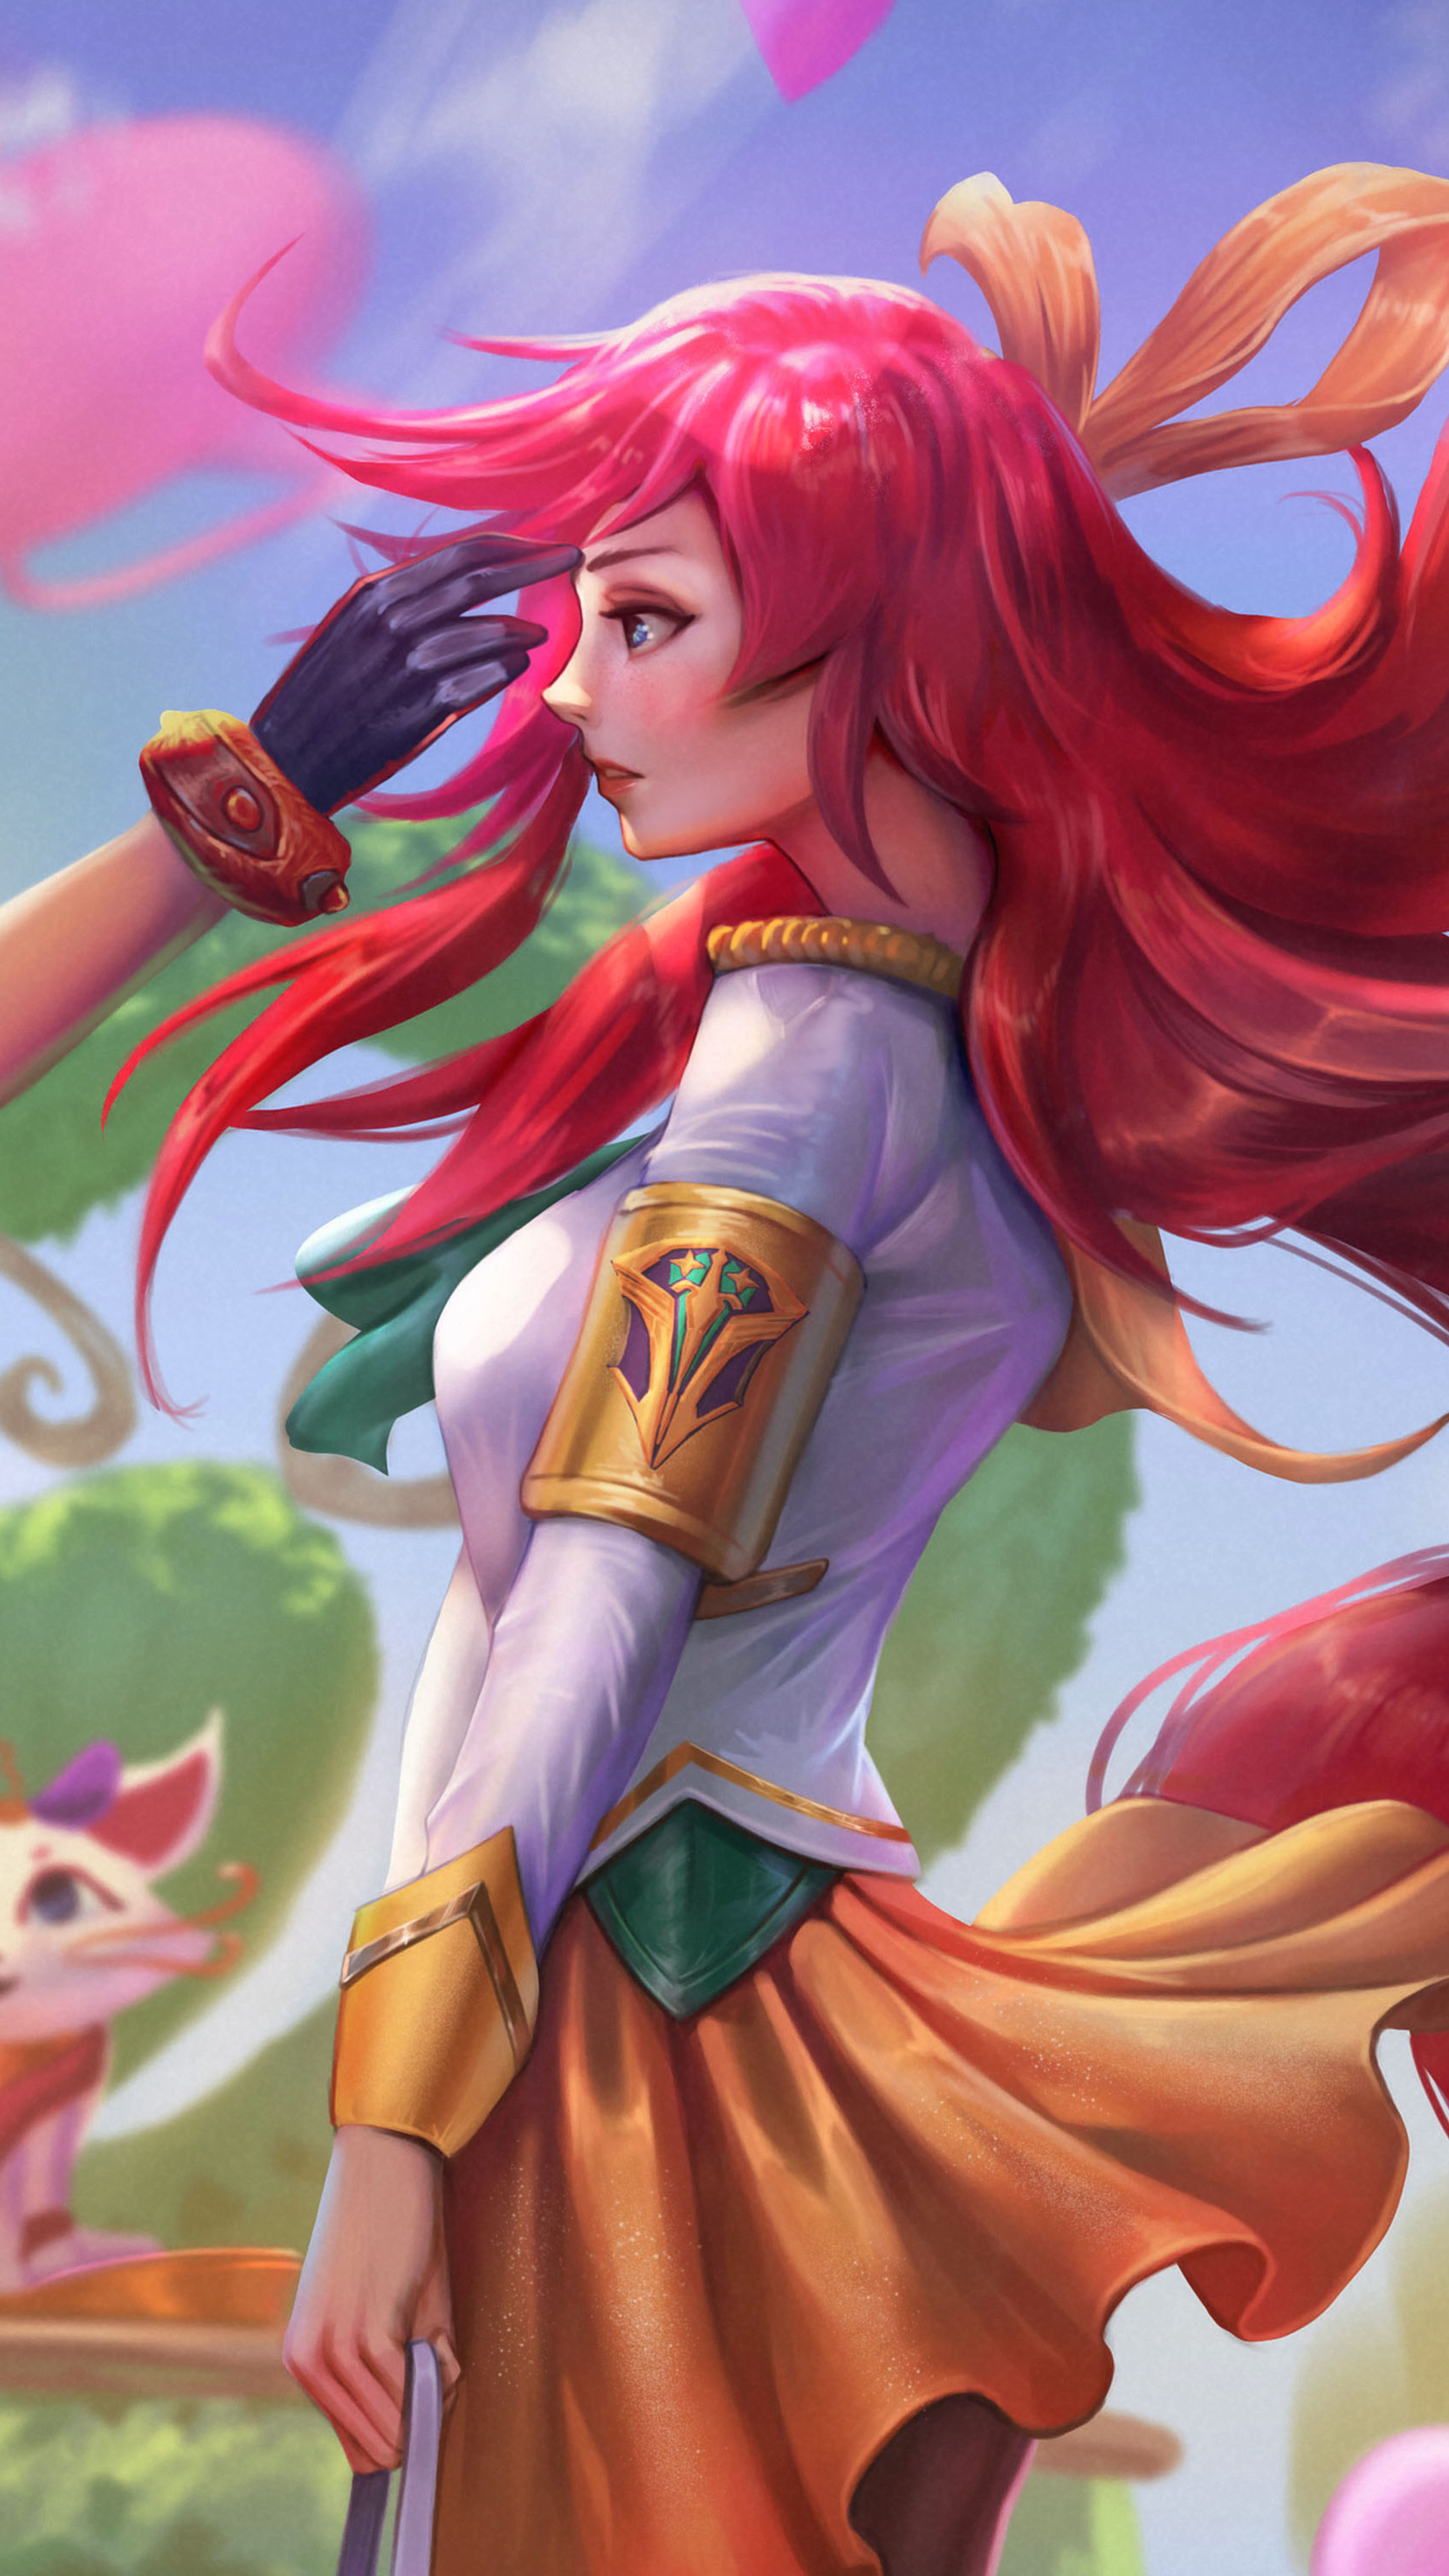 2160x3840 Battle Academy Ezreal And Lux League Of Legends 5k Sony Xperia X Xz Z5 Premium Hd 4k Wallpapers Images Backgrounds Photos And Pictures